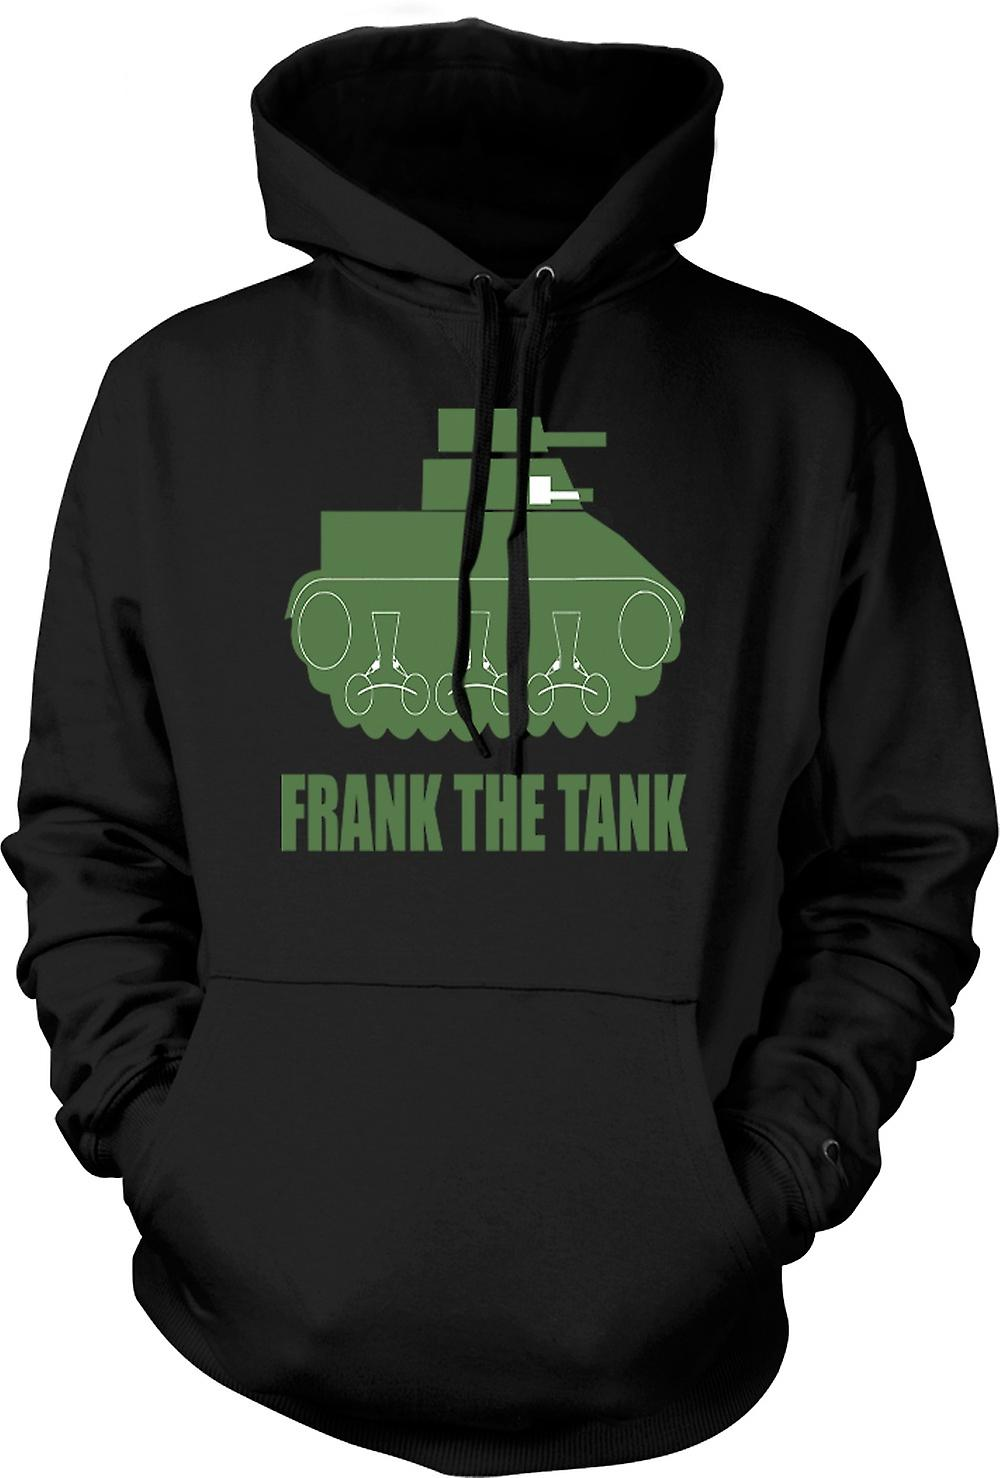 Kids Hoodie - Frank The Tank - Quote